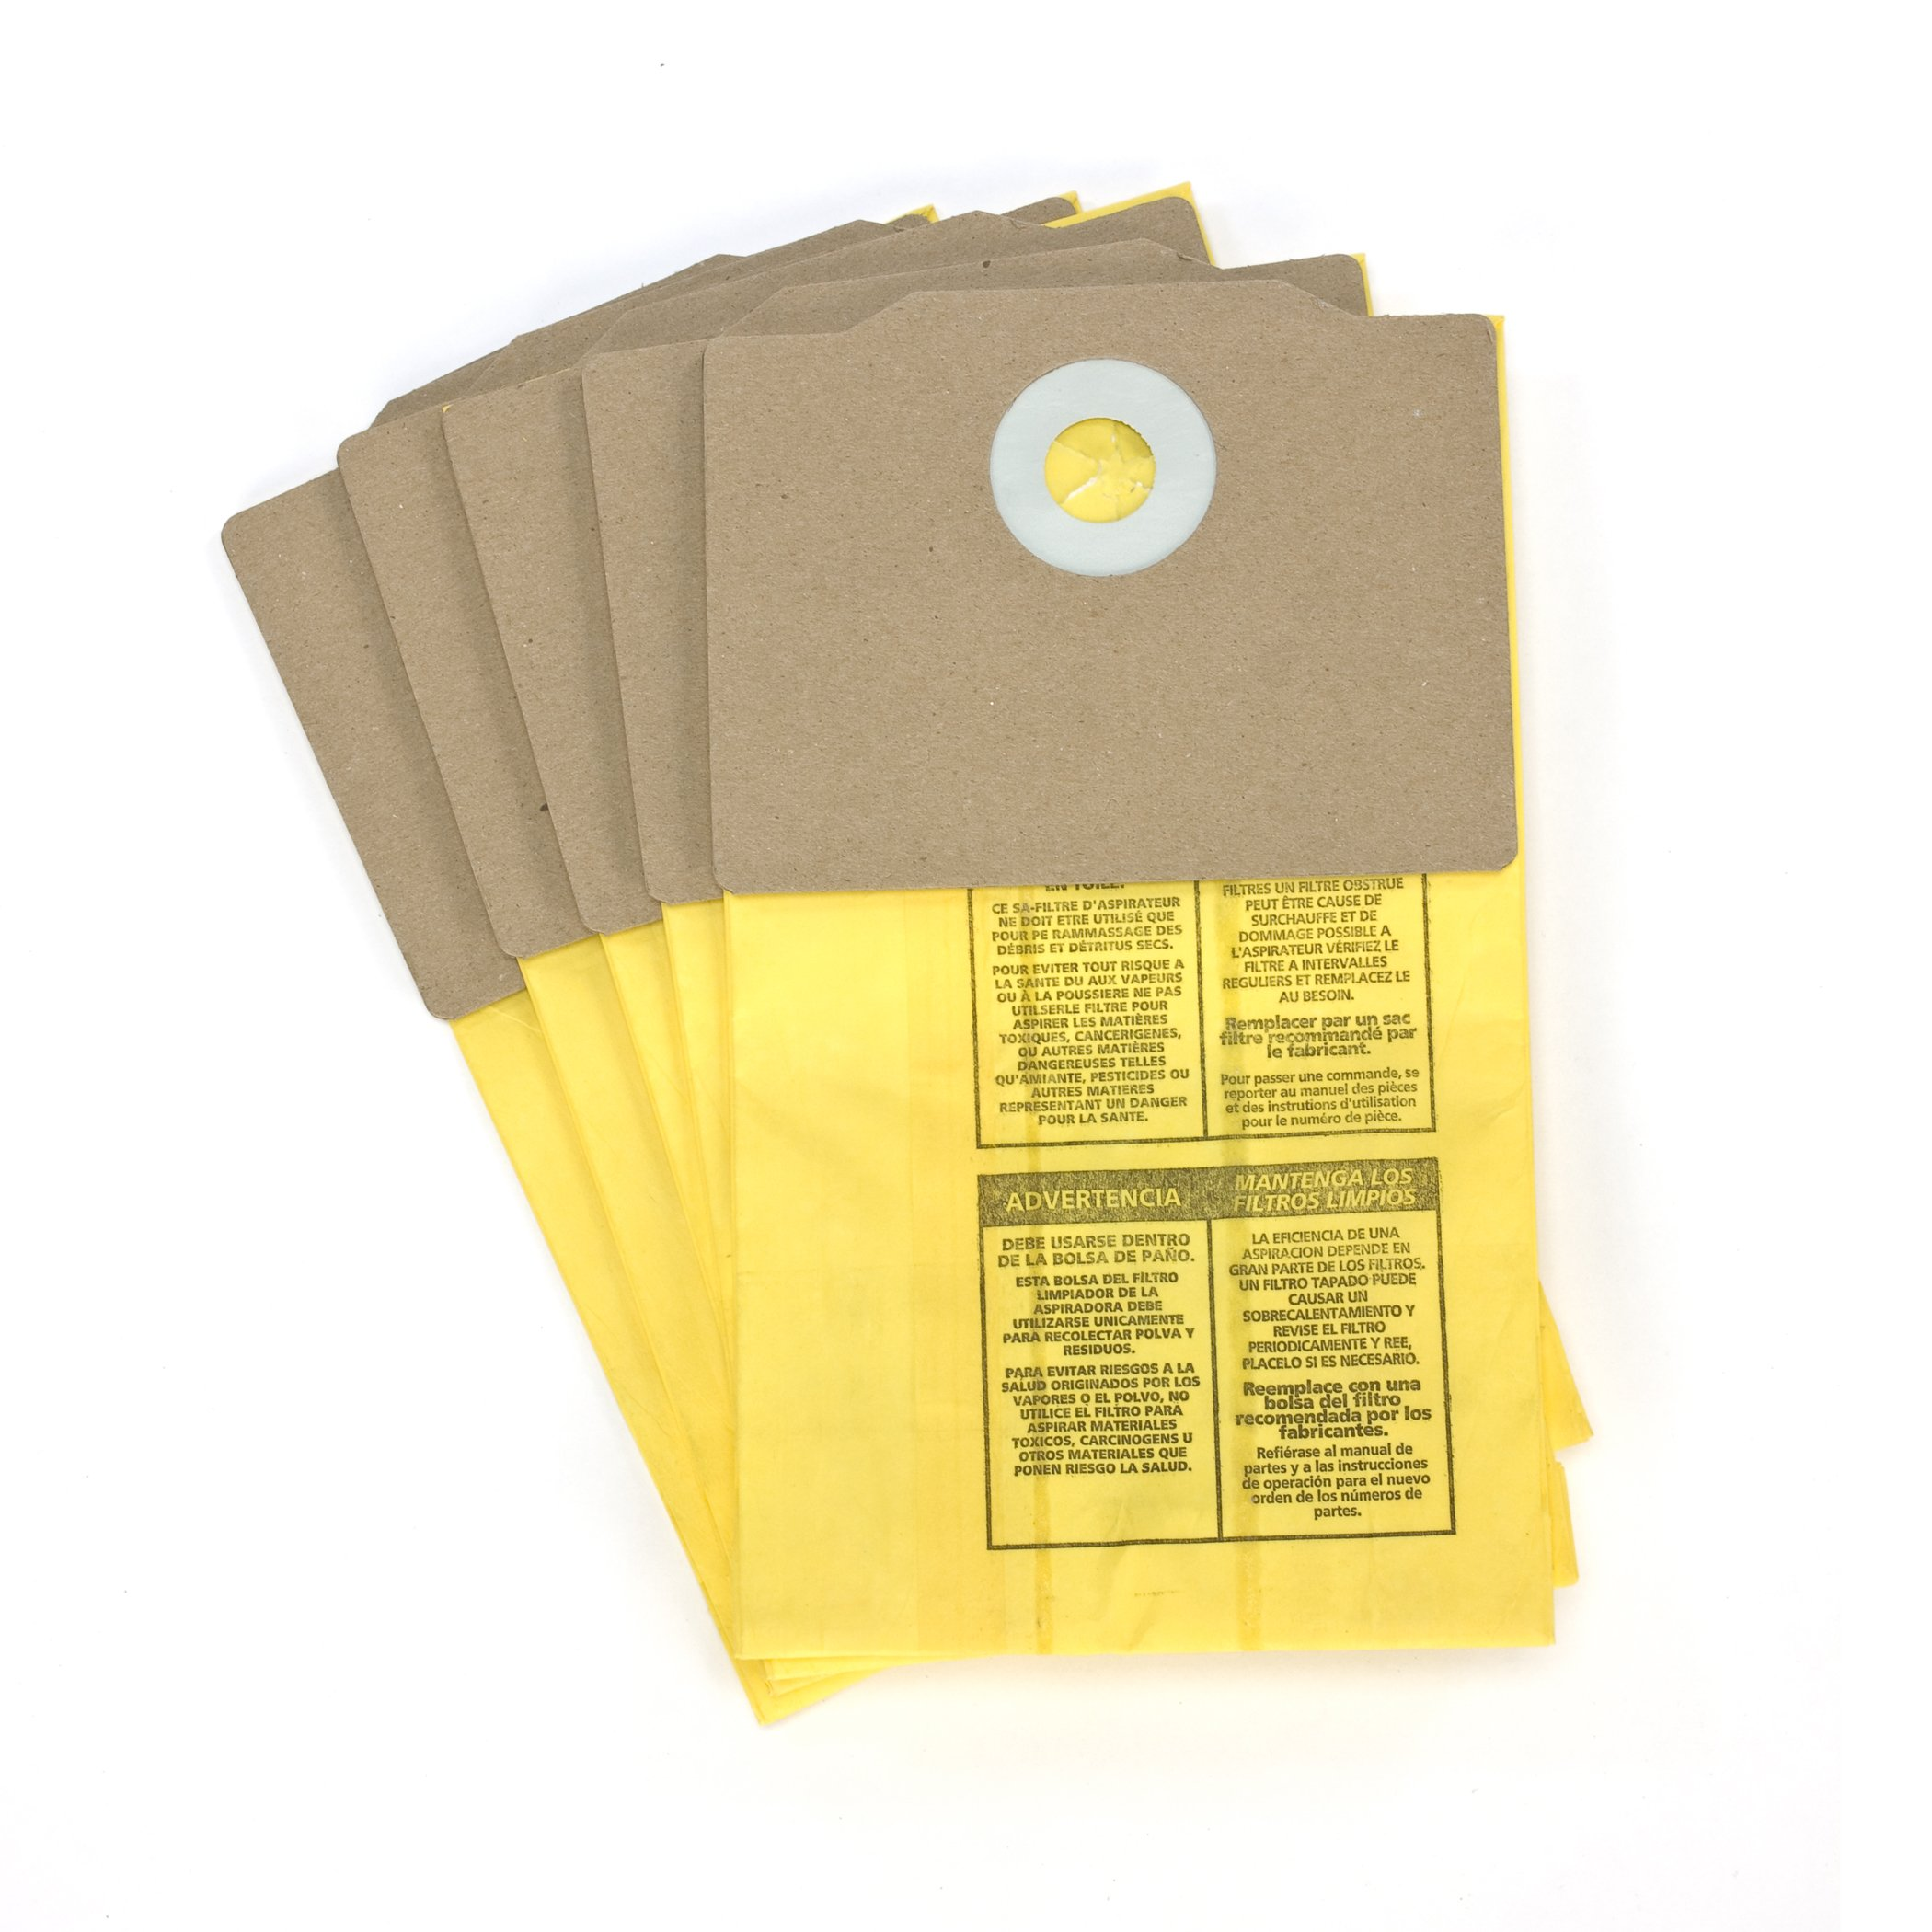 Shop-Vac 9191710 Genuine Back Pack Vacuum Collection Filter Bag, 5-Pack by Shop-Vac